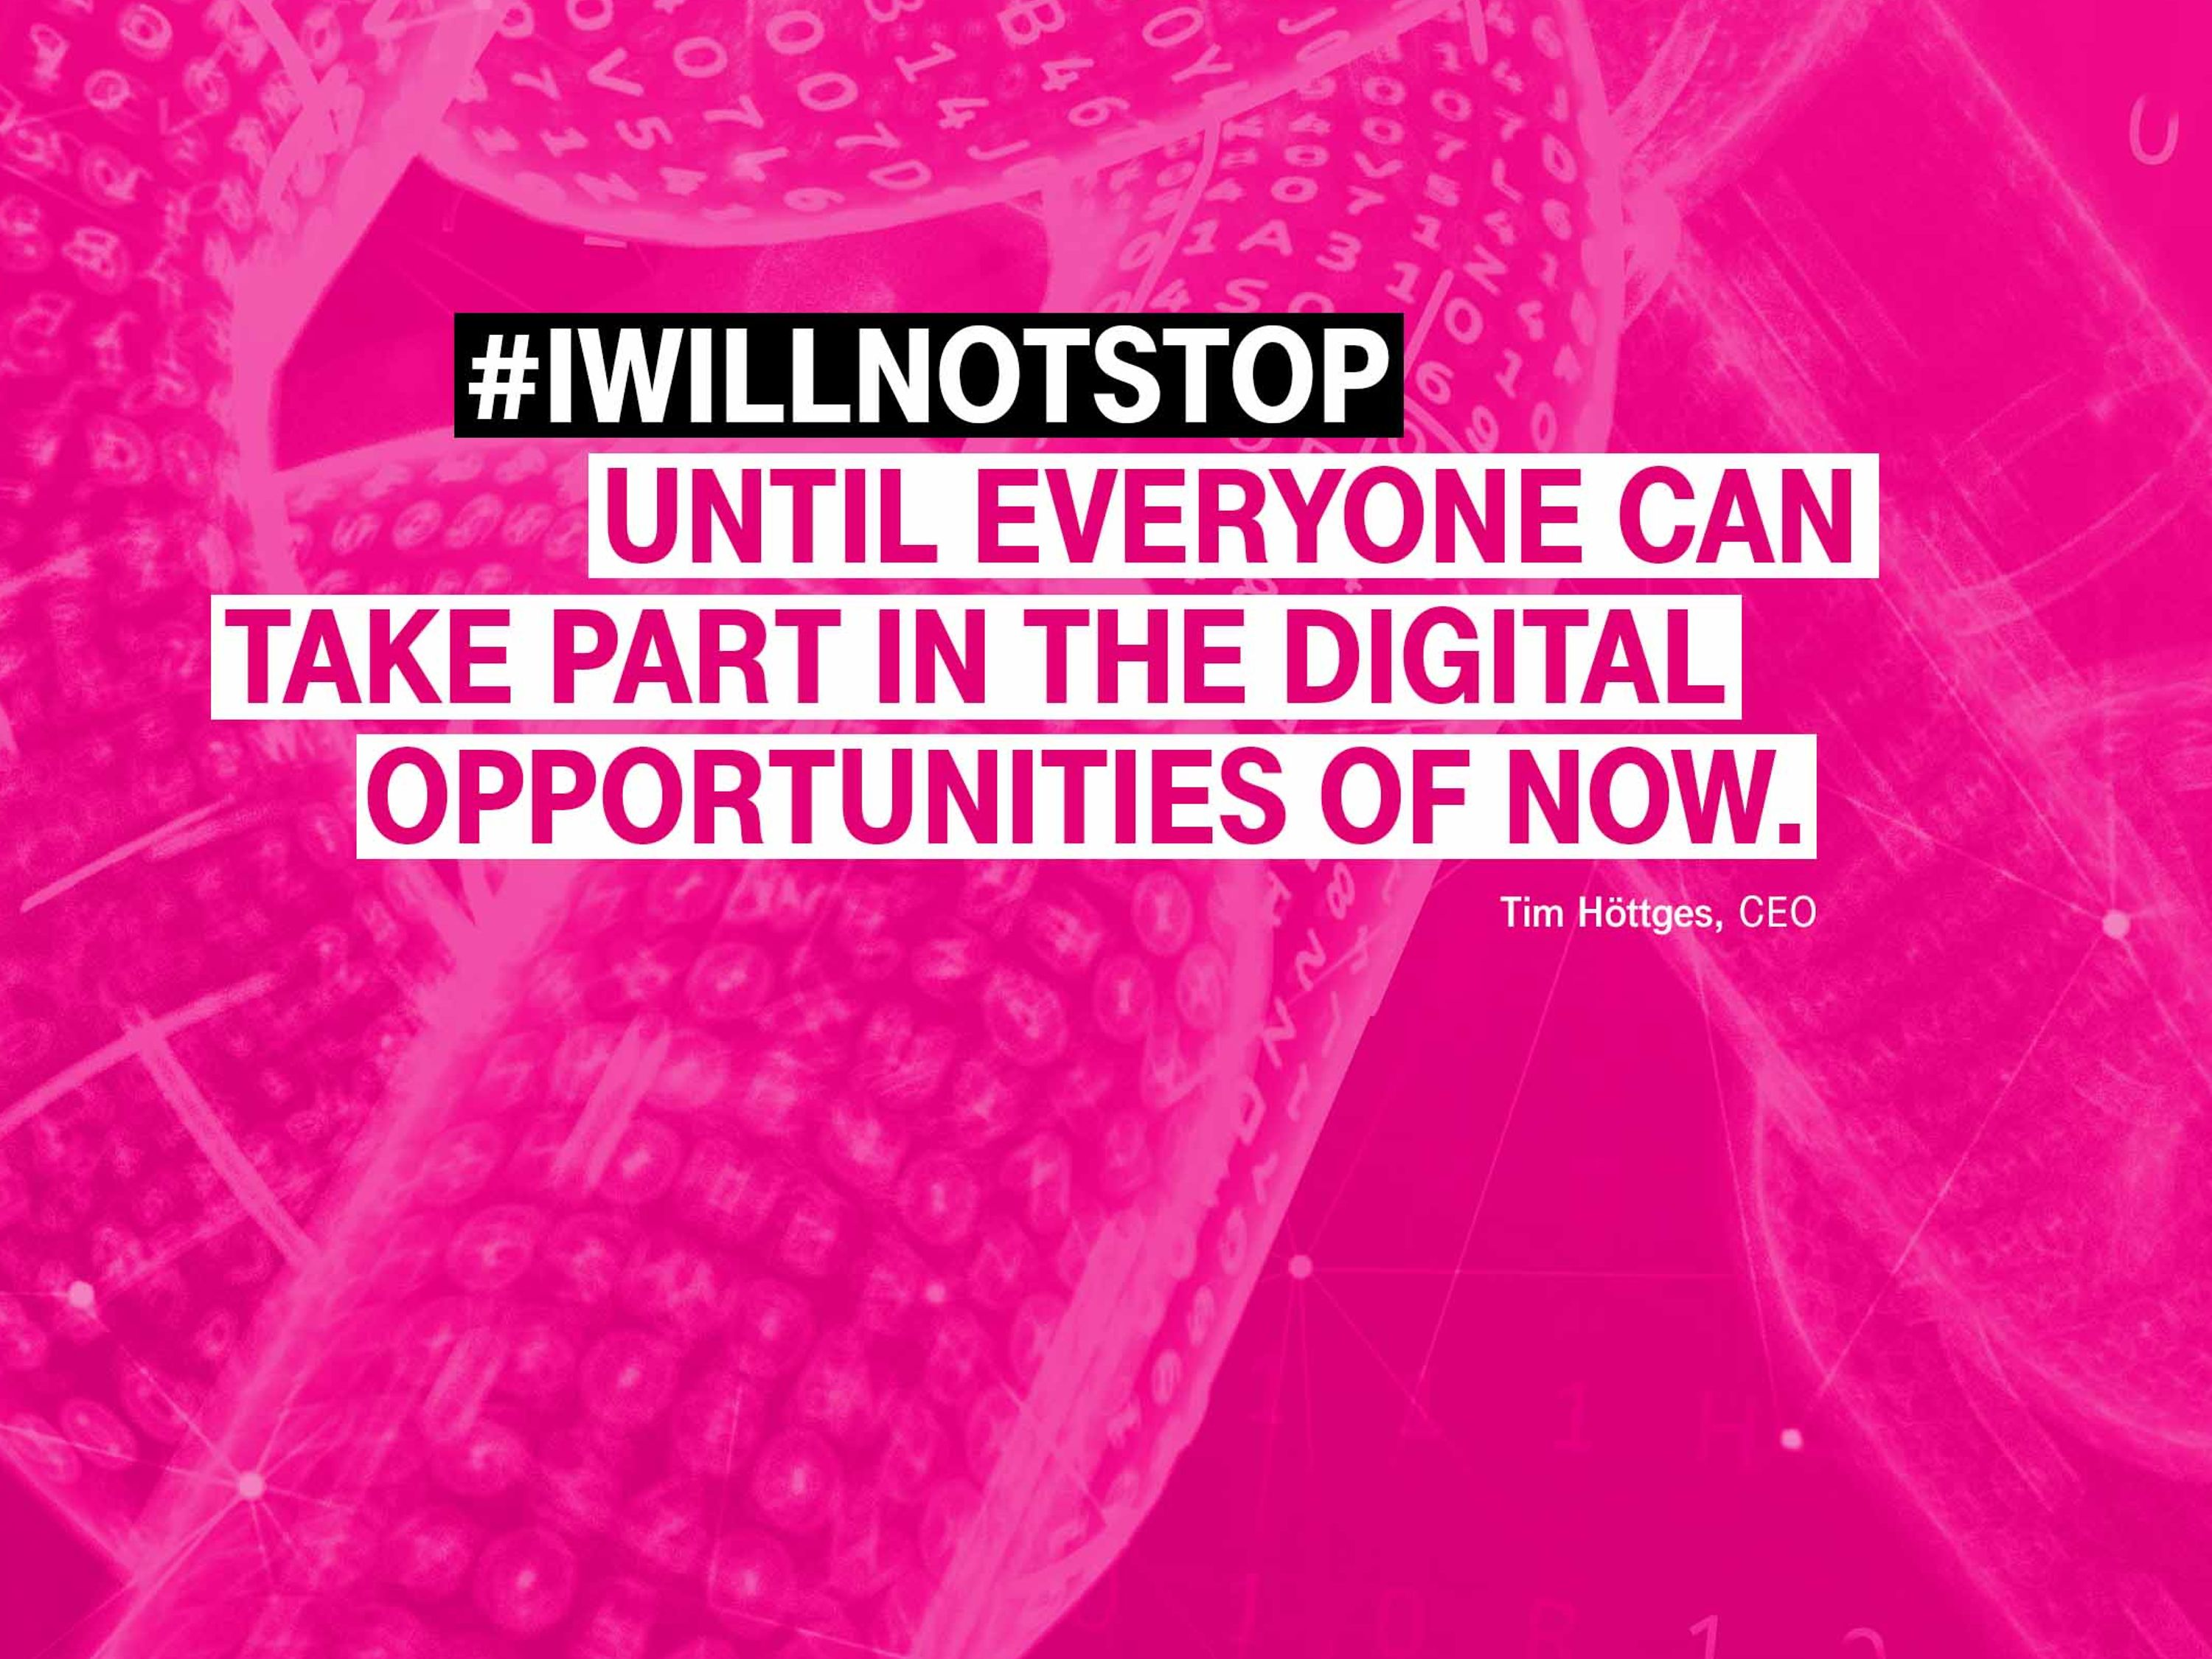 I will not stop, until everyone can take part in the digital opportunities of now.